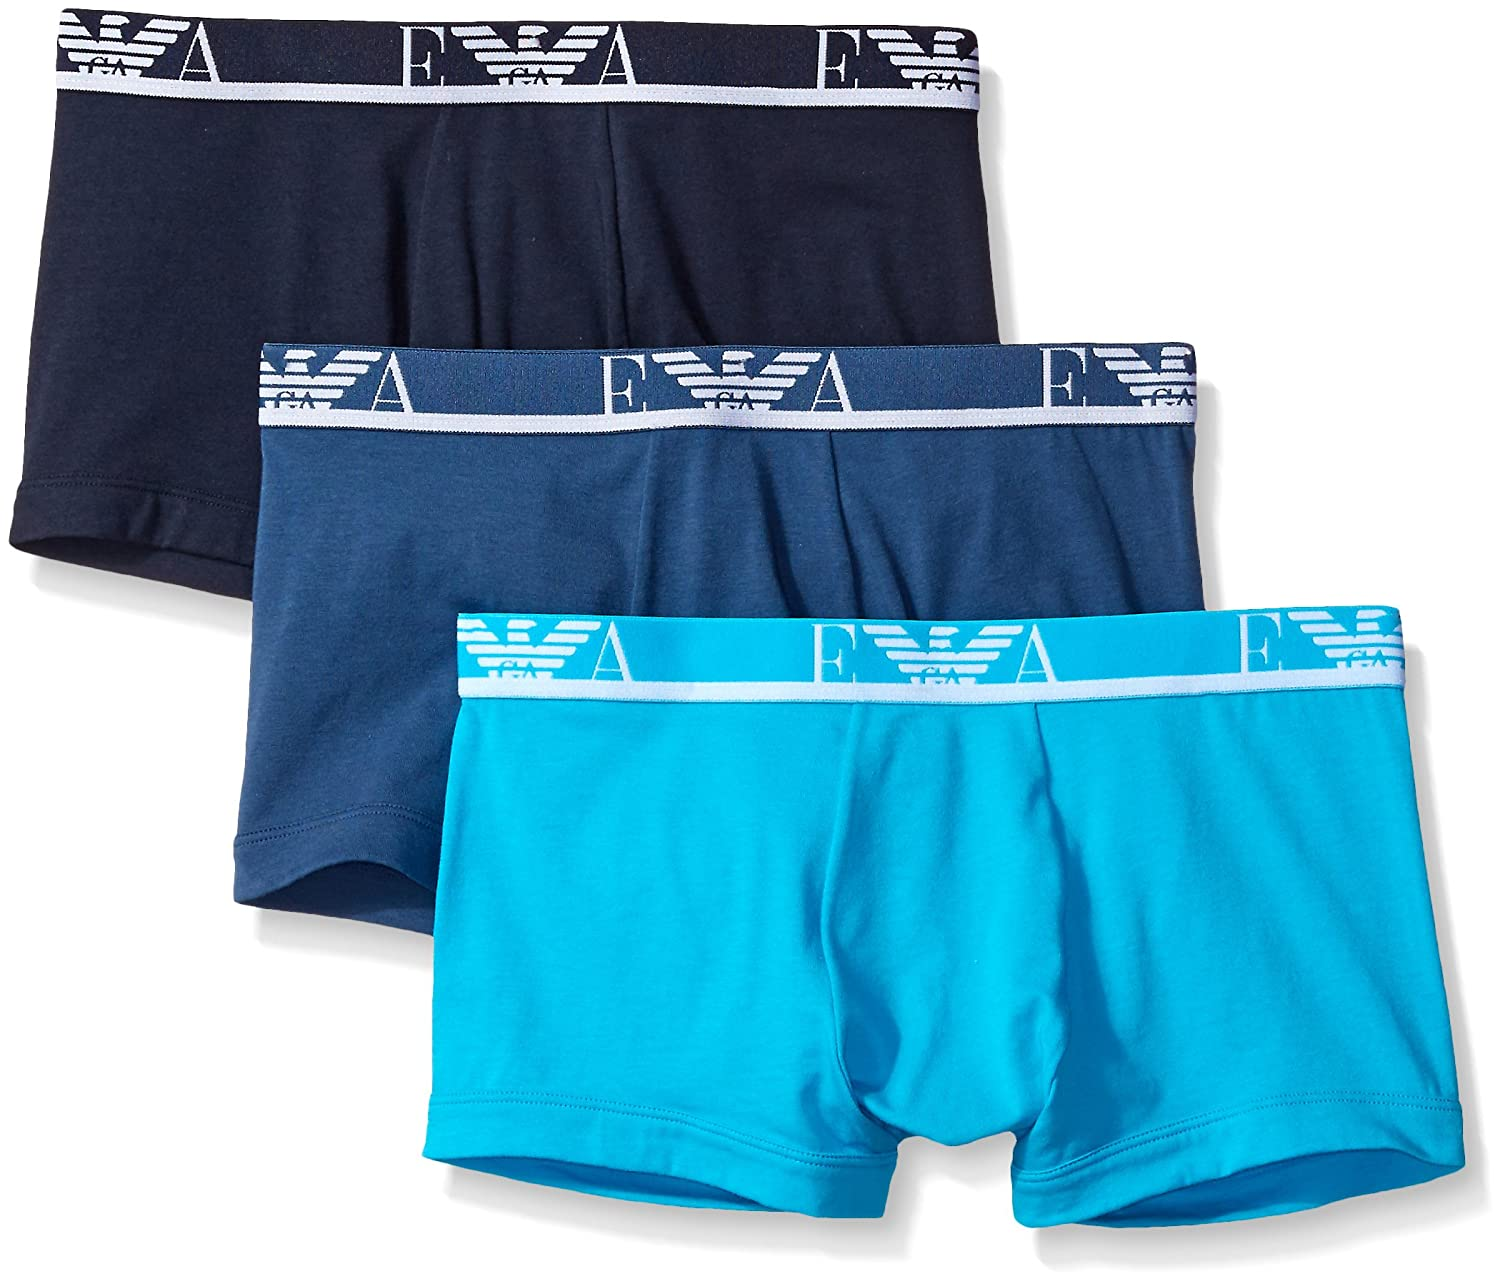 Emporio Armani Intimates Cotton Trunk 3 Pack with Fly Men's Trunks